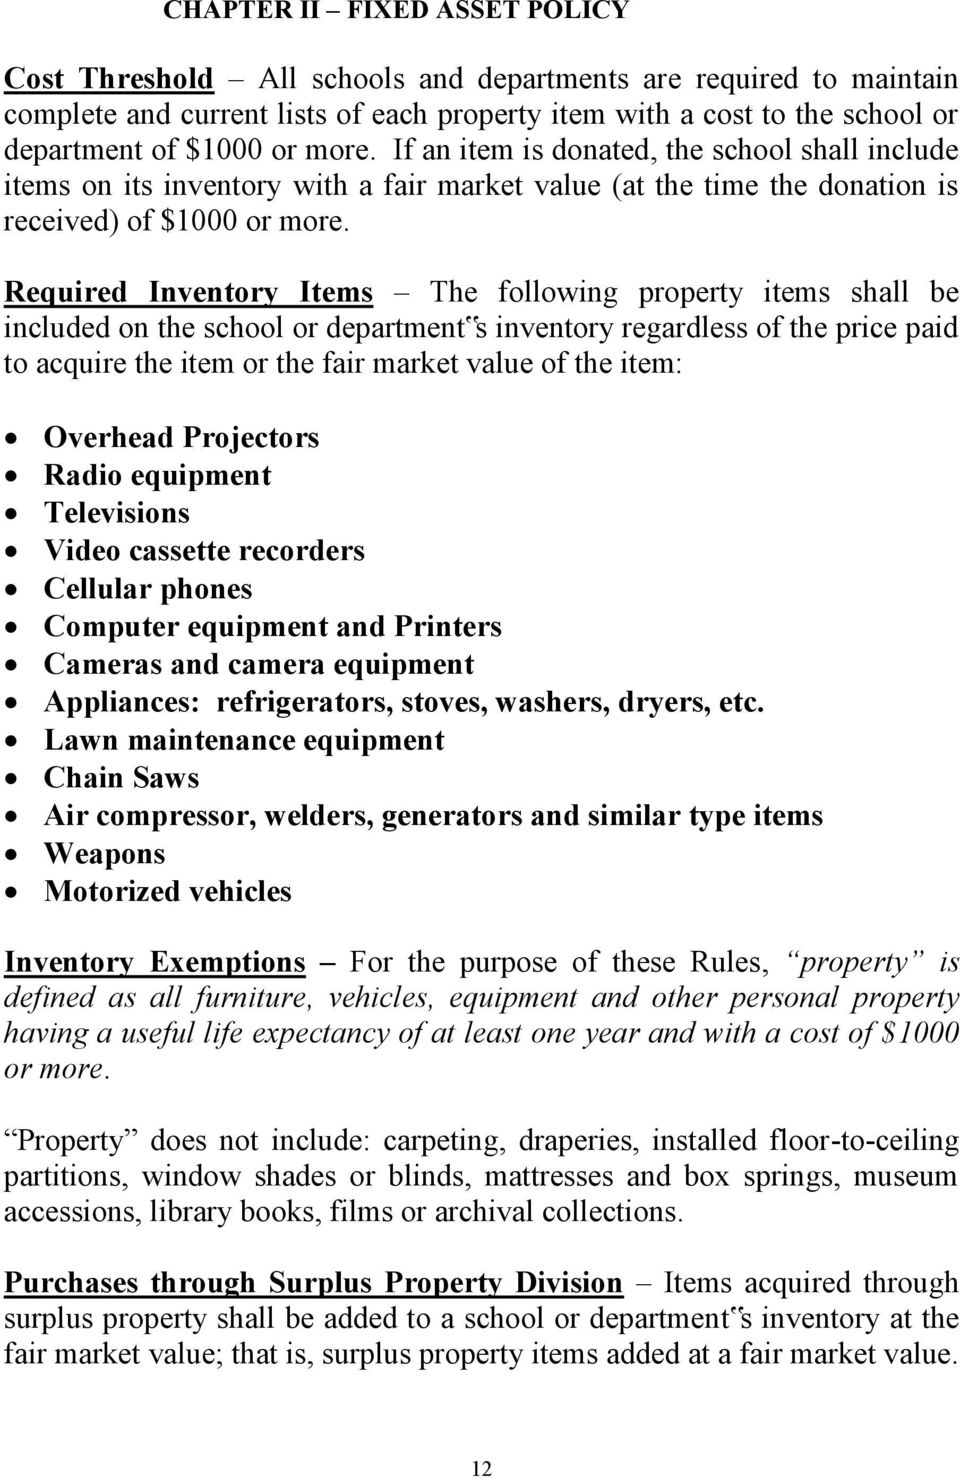 Required Inventory Items The following property items shall be included on the school or department s inventory regardless of the price paid to acquire the item or the fair market value of the item: